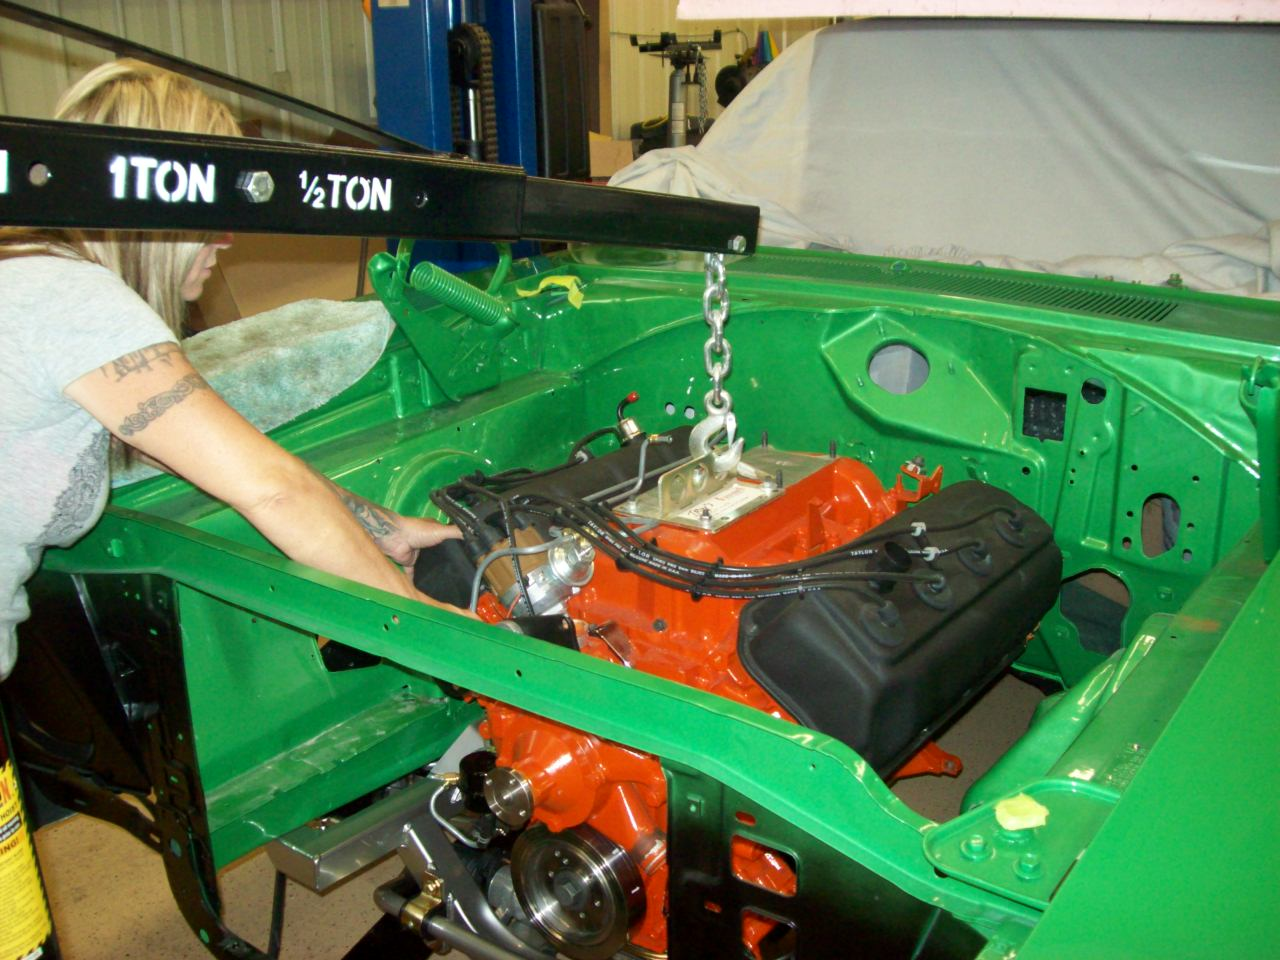 The R/T Garage Project Gallery - Mopar Restoration and Performance